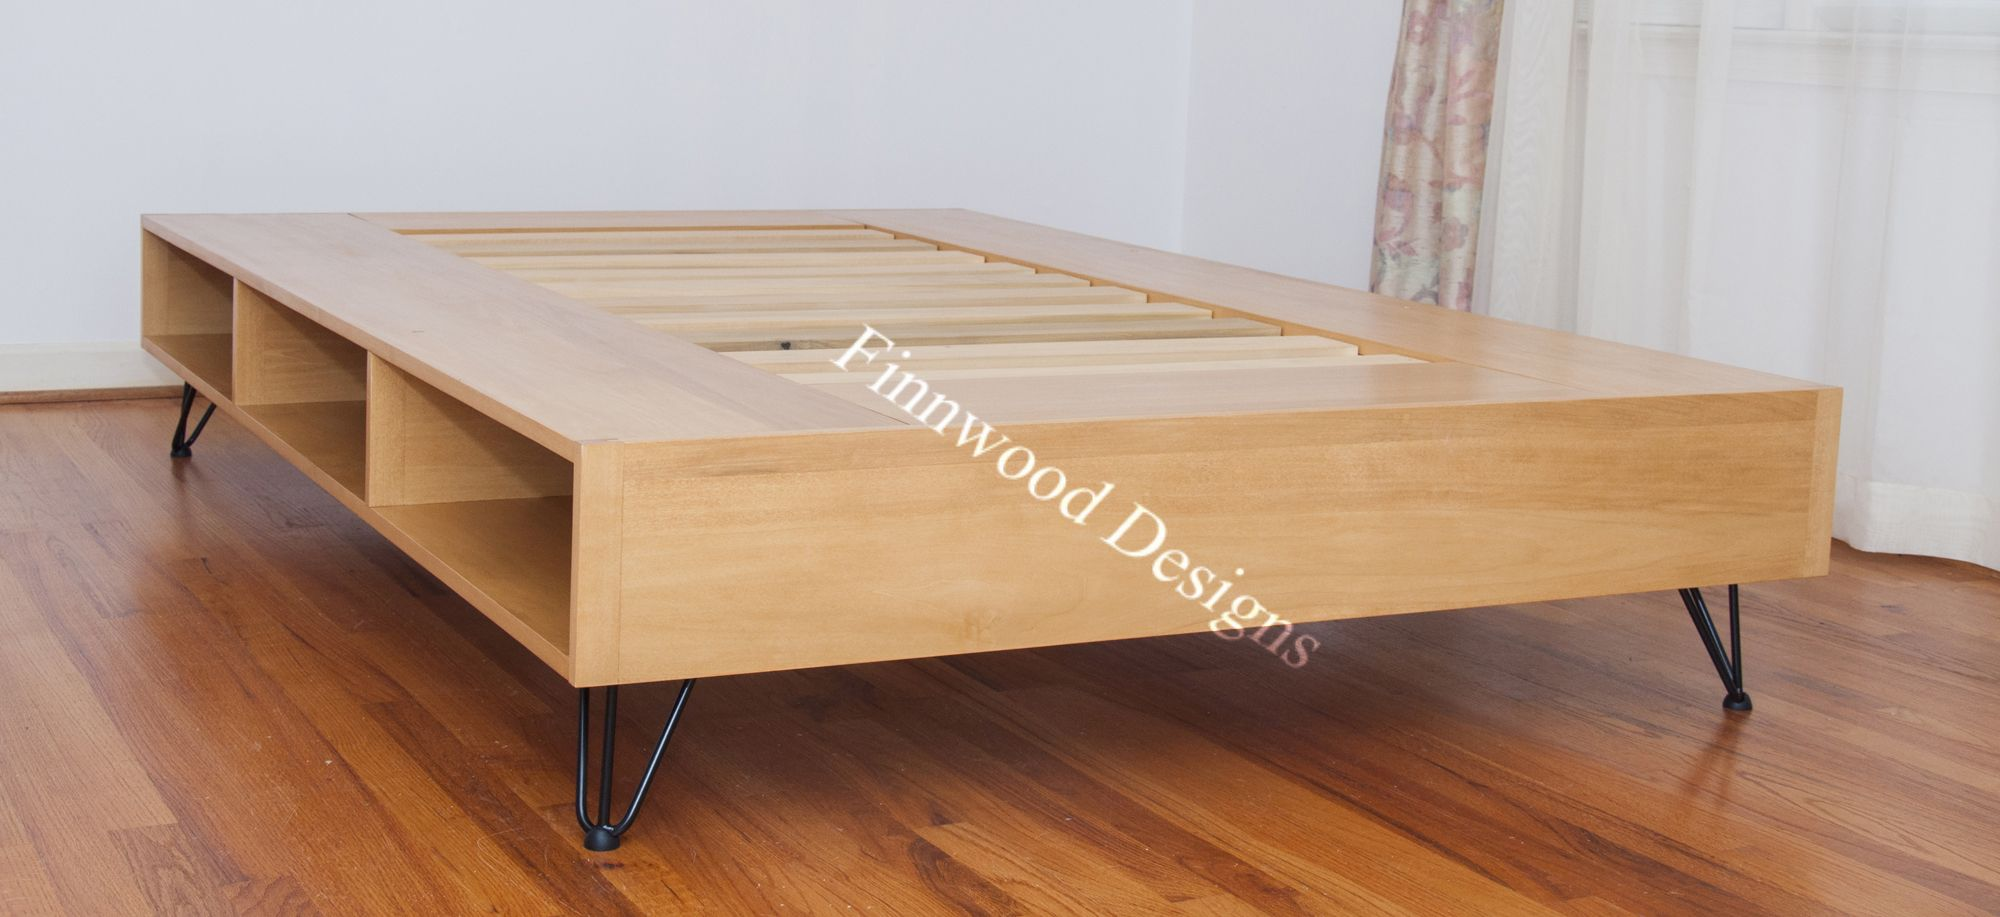 Custom Hairpin Leg Storage Bed Storage Bed Storage Headboards For Beds